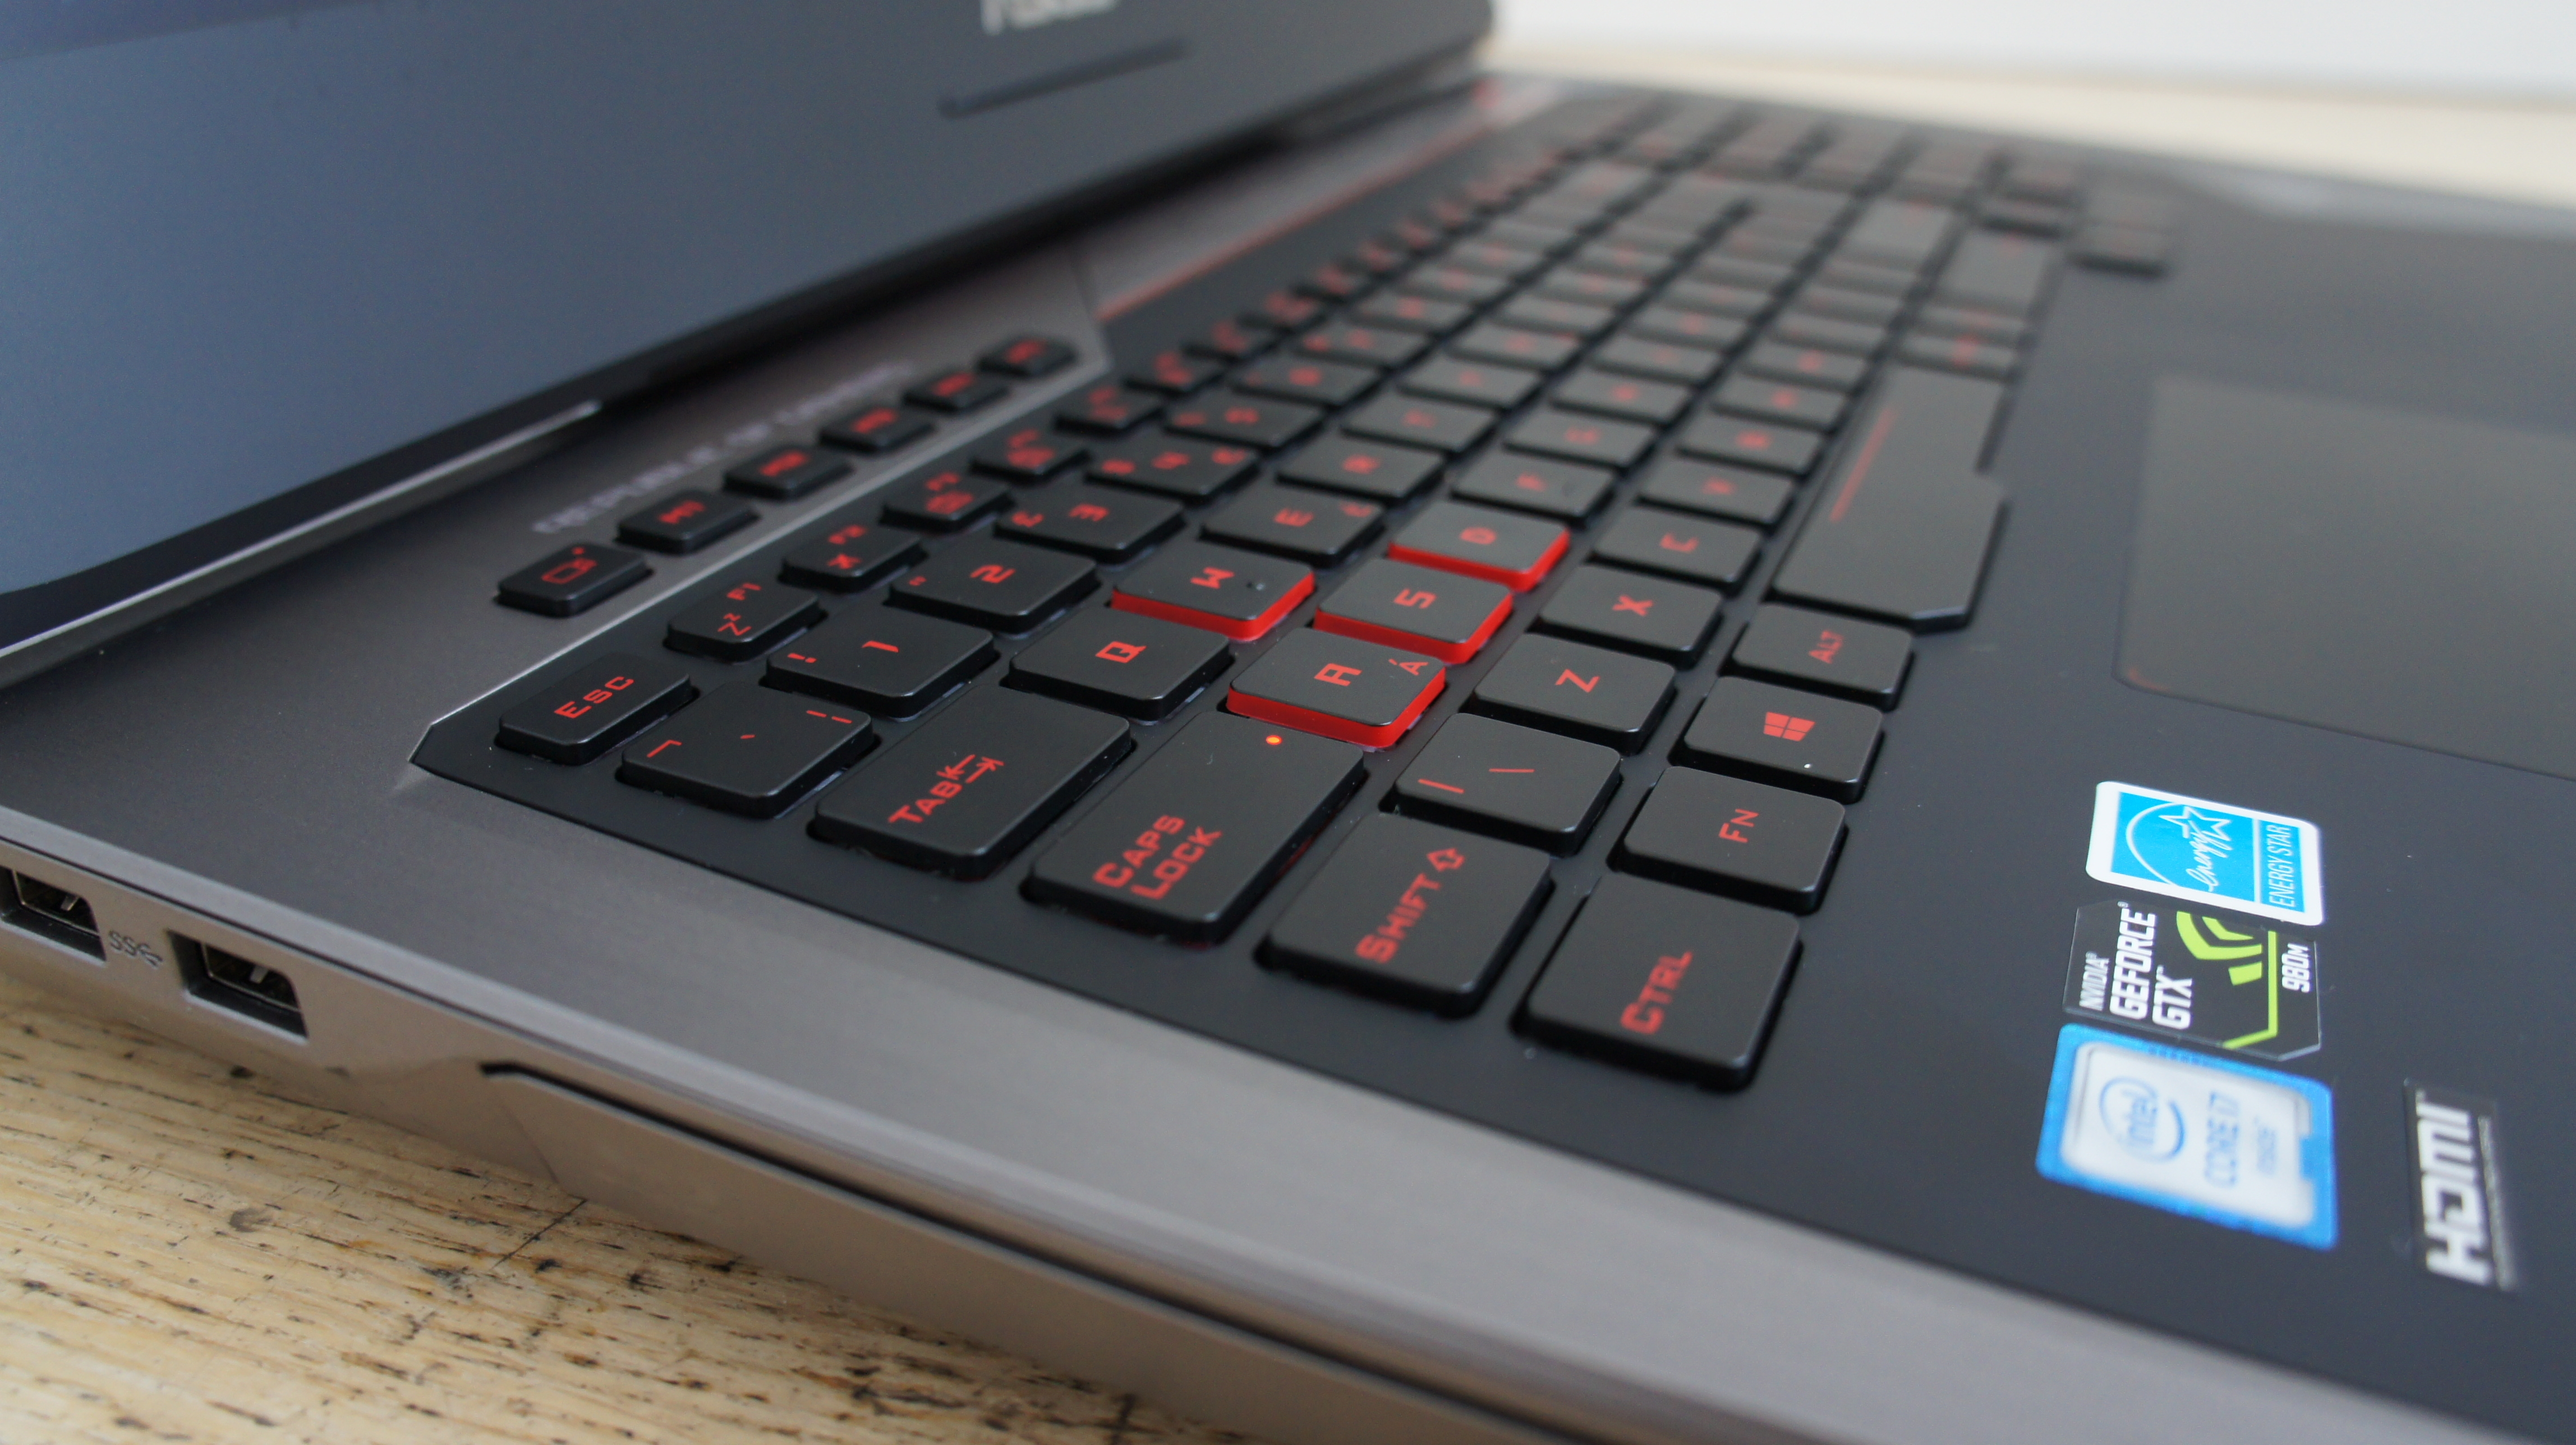 asus rog g752vy pictures expert reviews